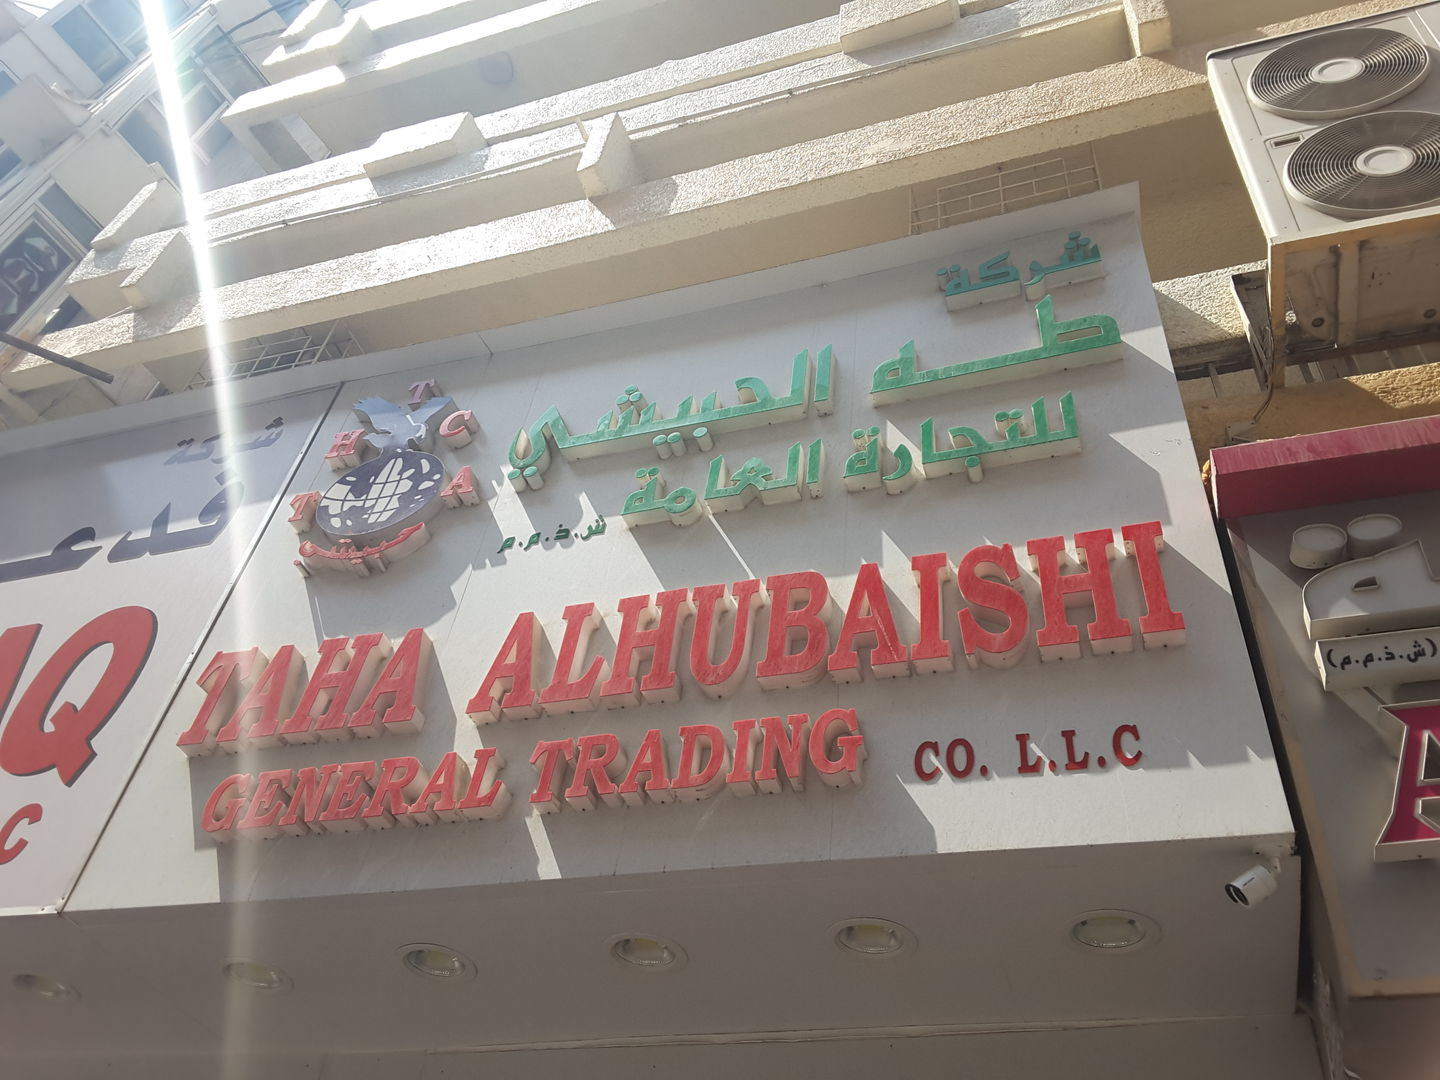 Walif-business-taha-al-hubaishi-general-trading